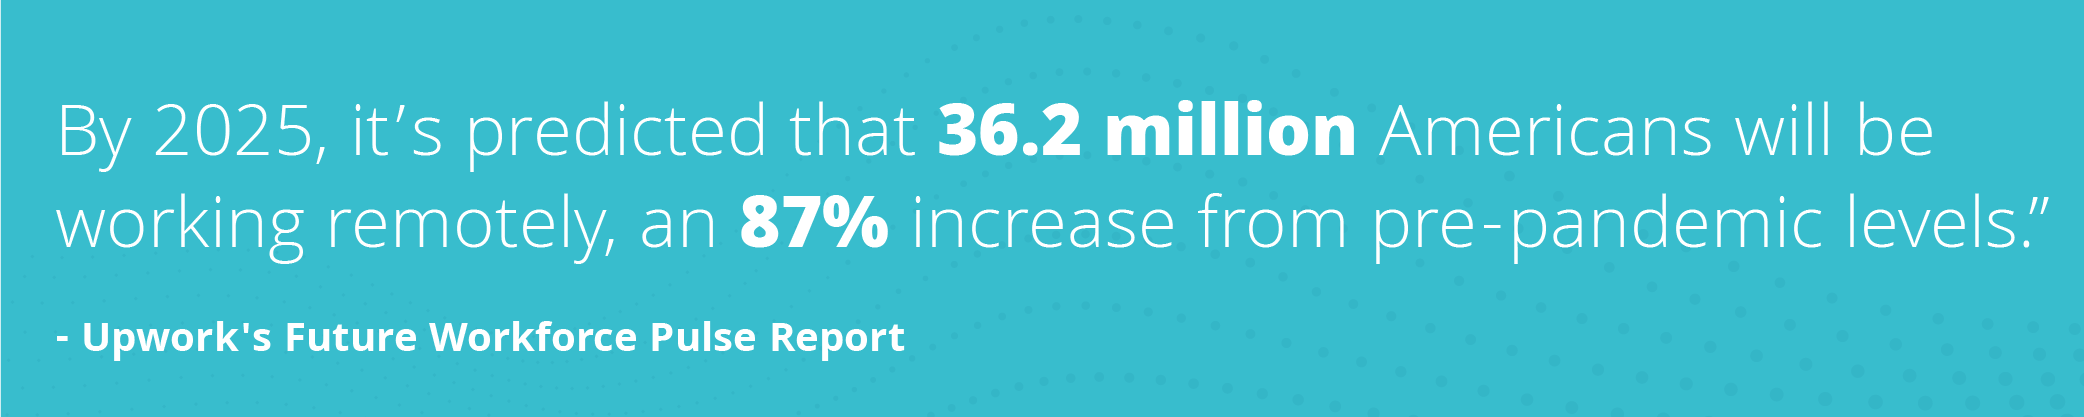 quote: 36.2 million americans will be working remotely